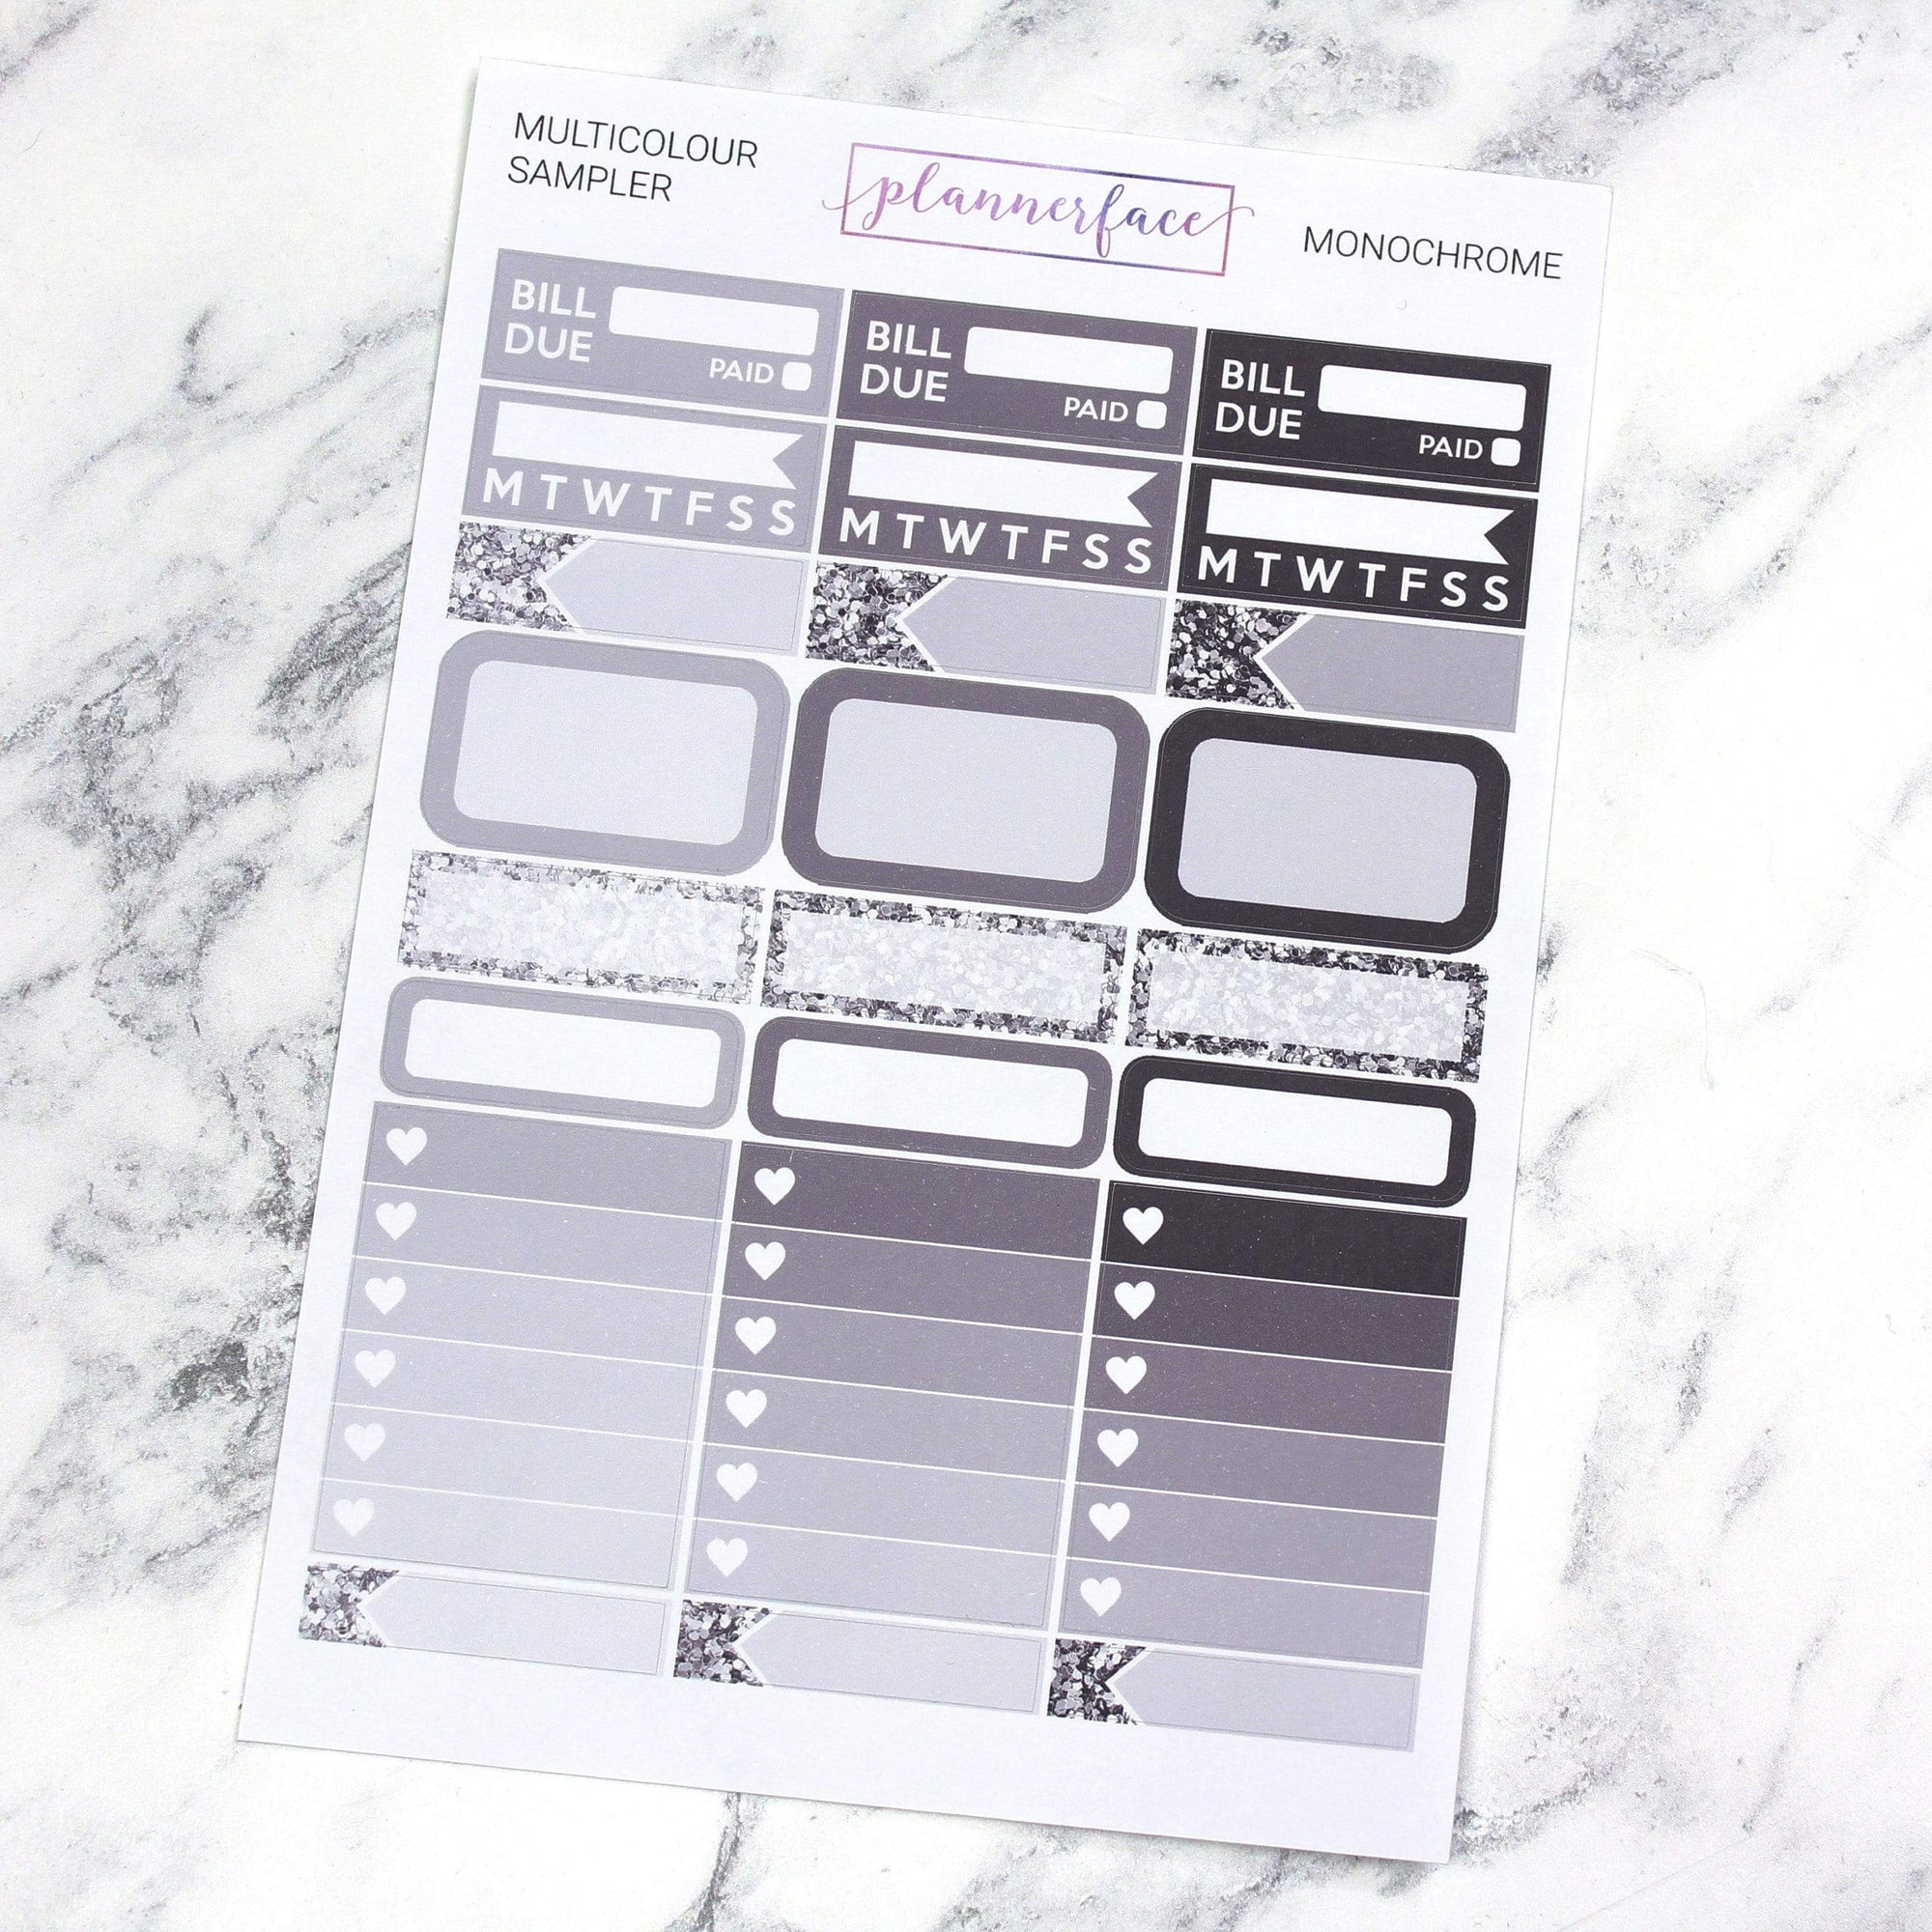 Plannerface Monochrome Multicolour Sampler Planner Stickers